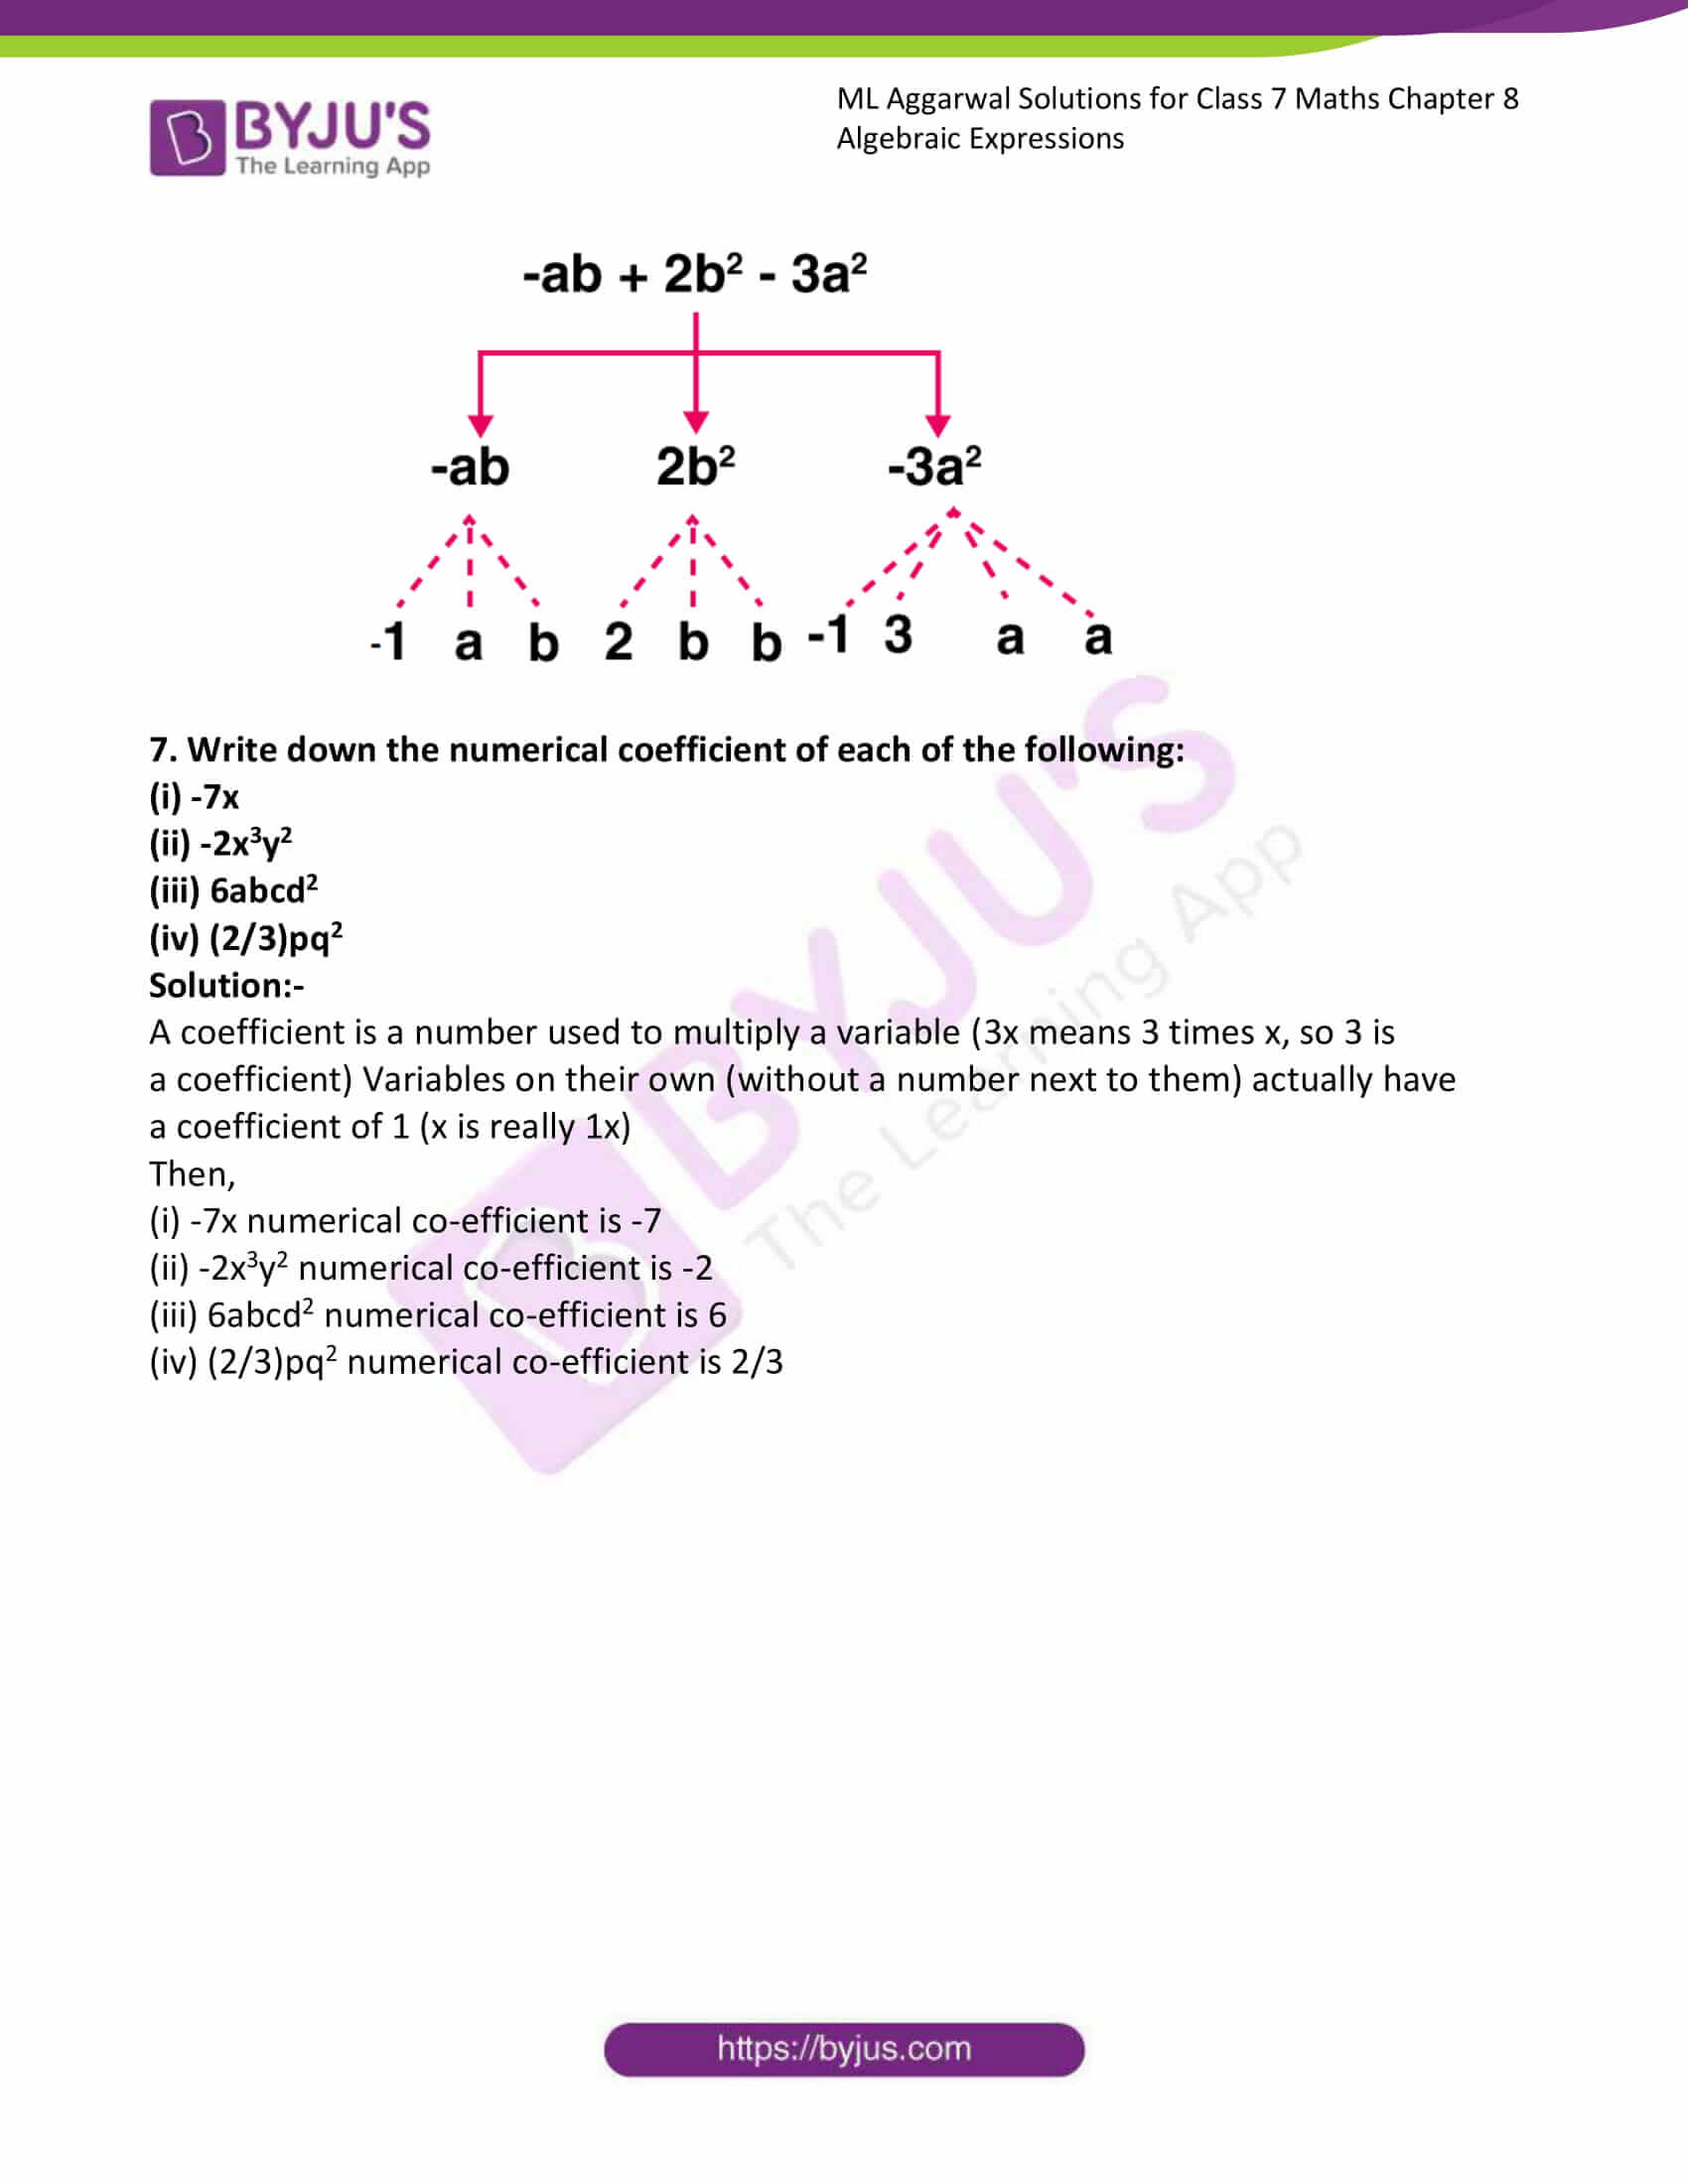 ml aggarwal sol class 7 maths chapter 8 5